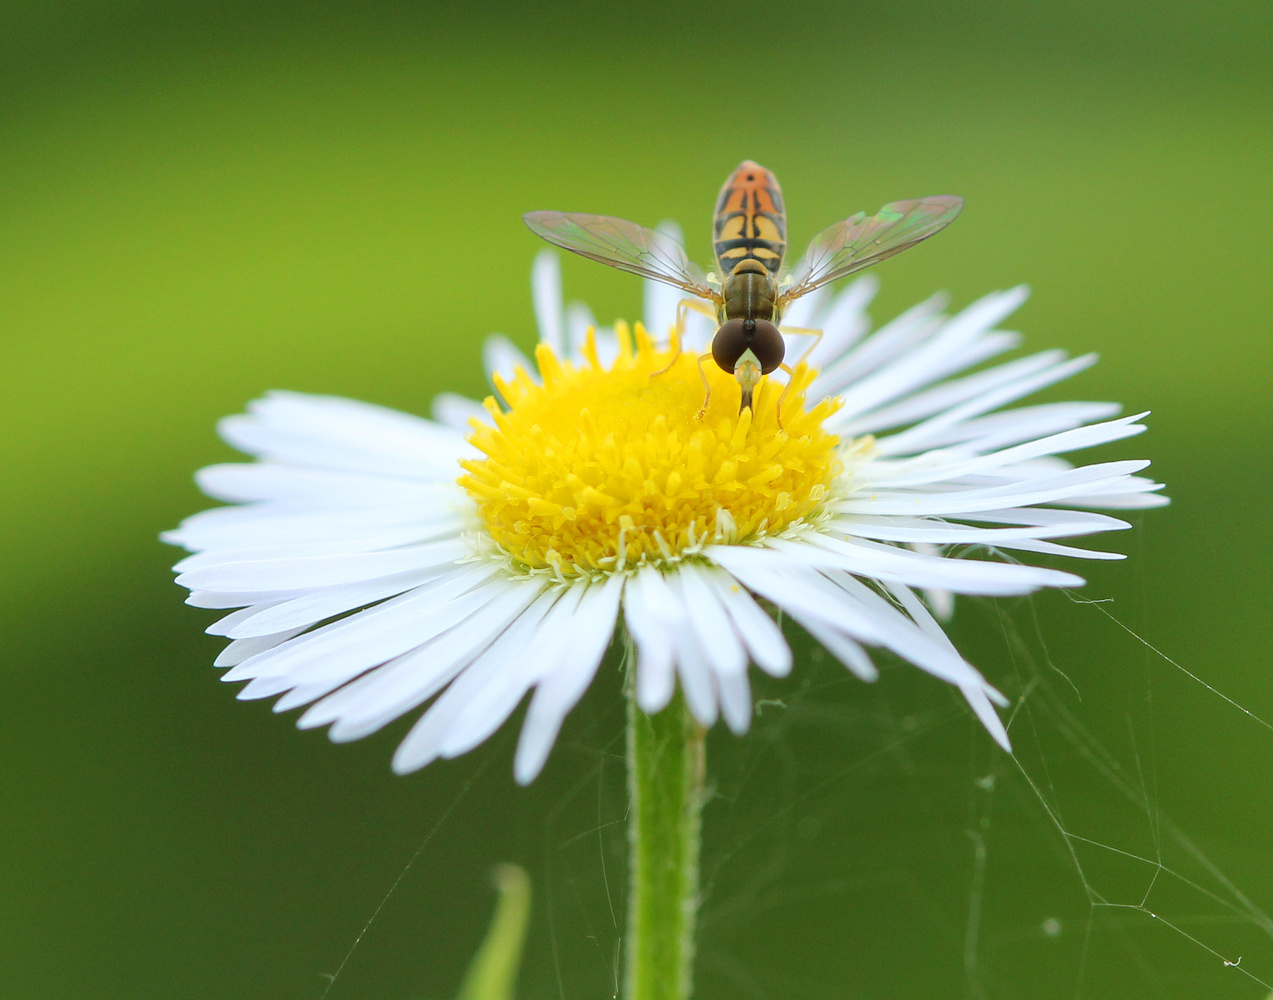 Hoverfly on flower by Brian Magnier